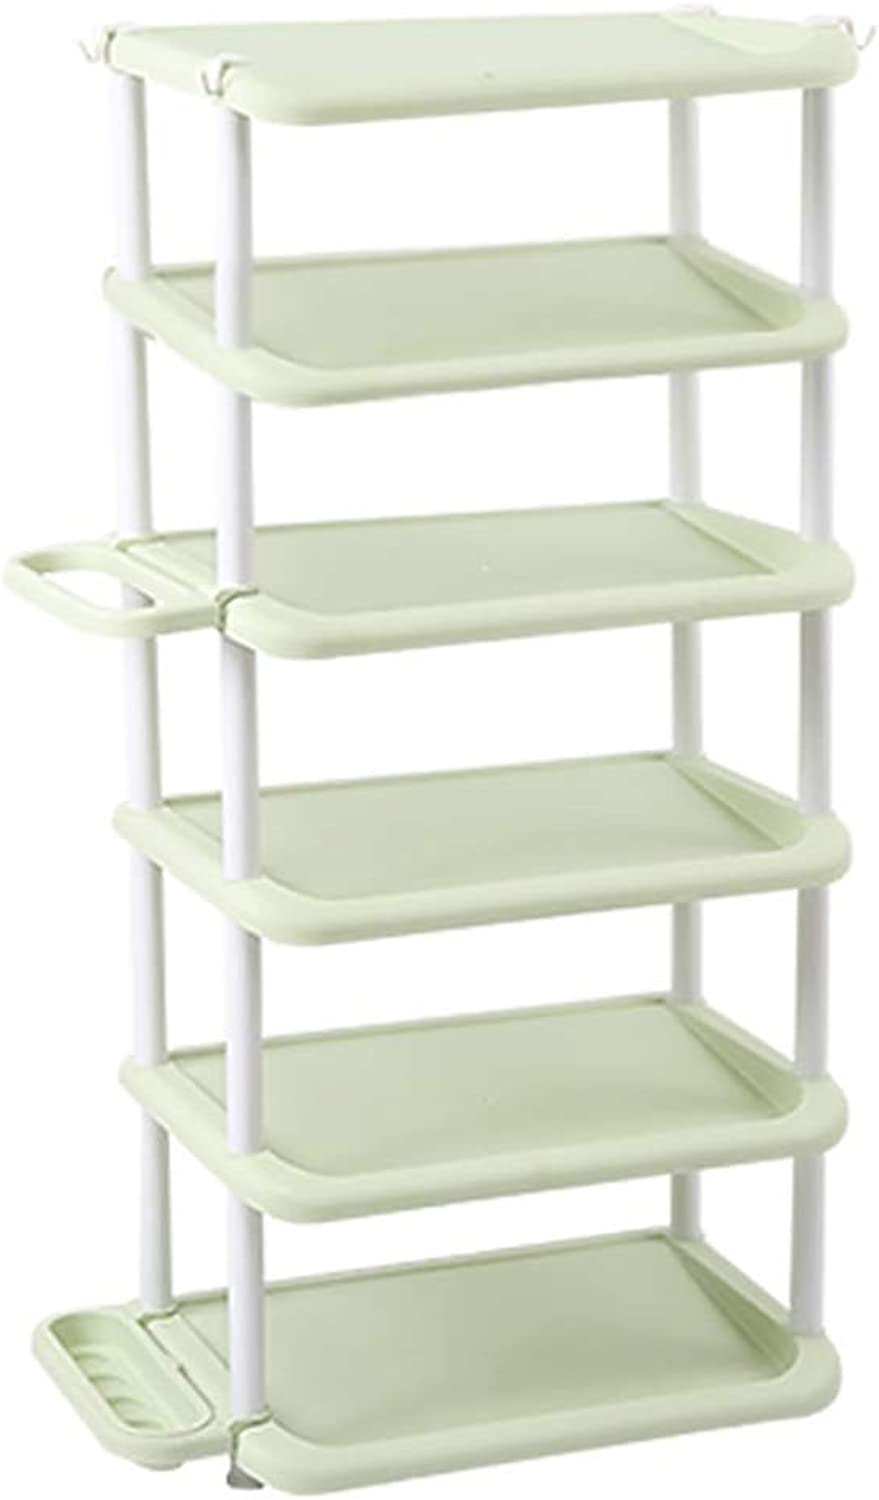 4 5 6-layer shoes Rack Shelf Umbrella Stand Storage Shelf shoes Cabinet Multifunction Household Doorway Entrance Space Saving (color   C, Size   47.5  31.5  104CM)